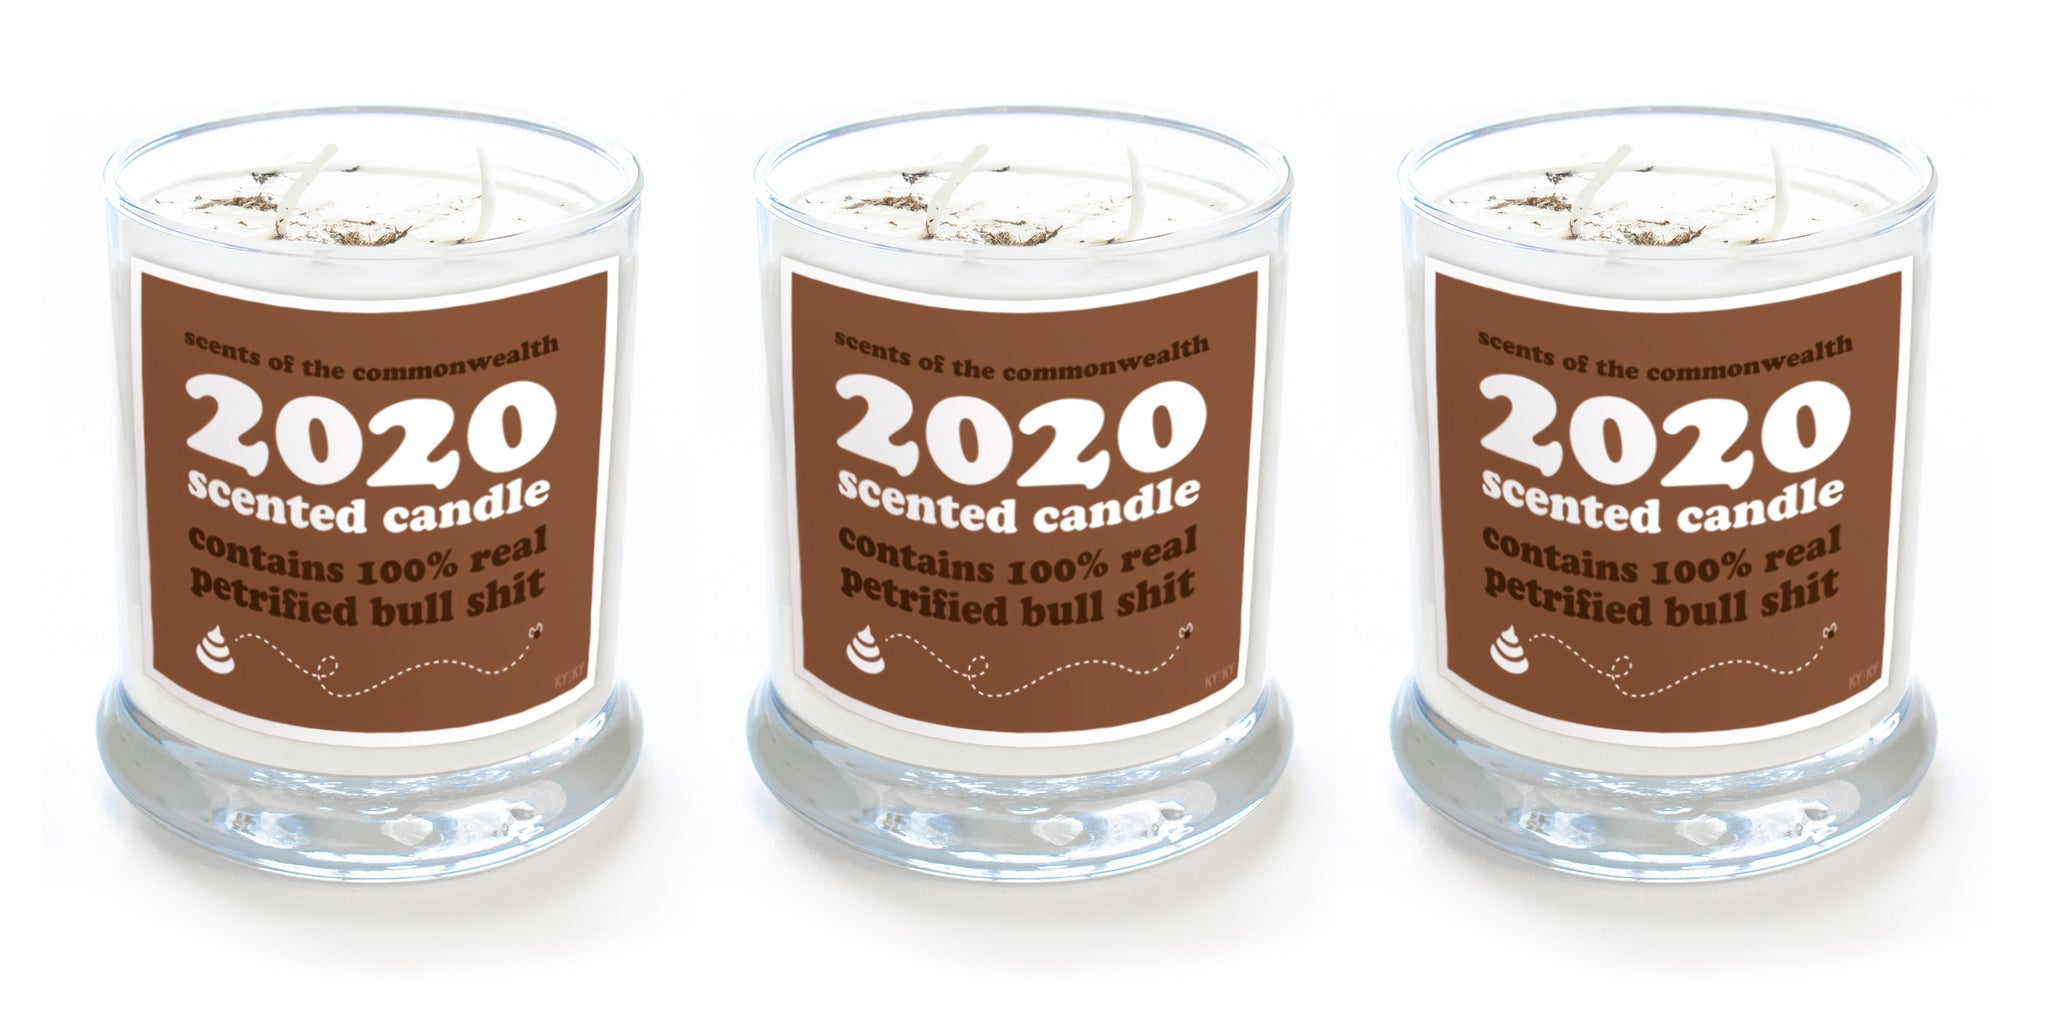 2020 Scented Candles!